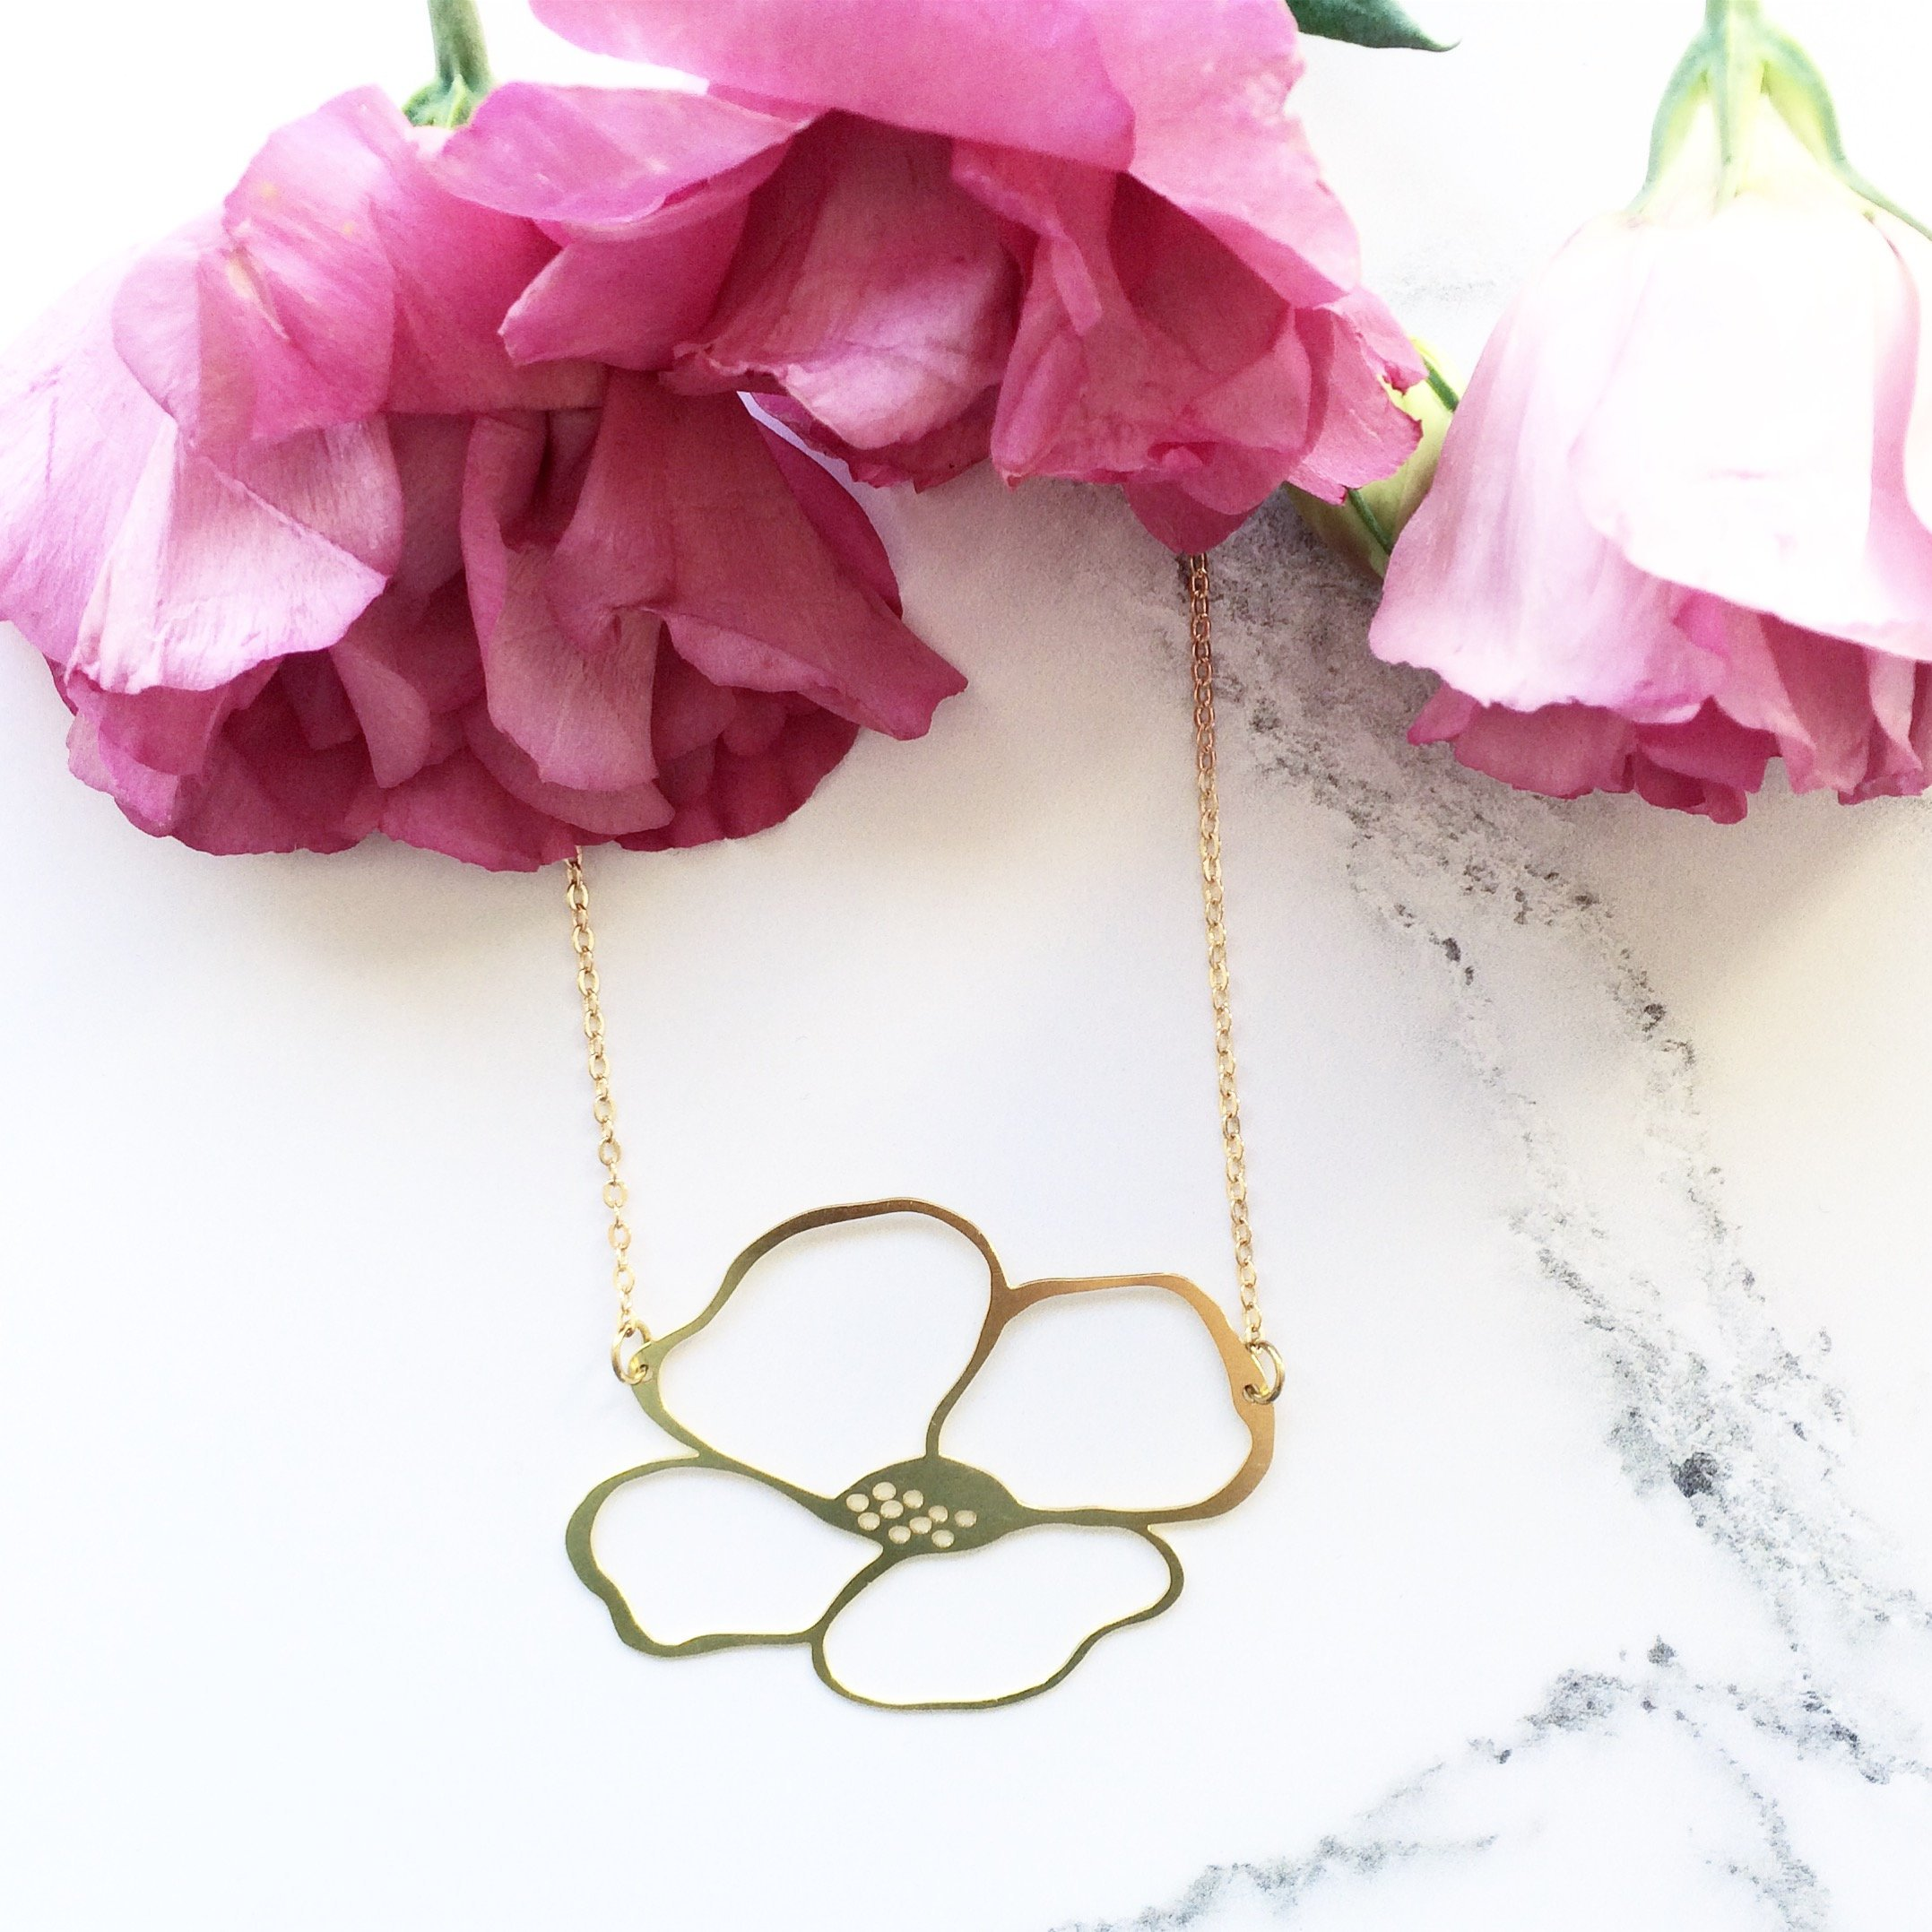 Anemone Necklace by Mica Peet